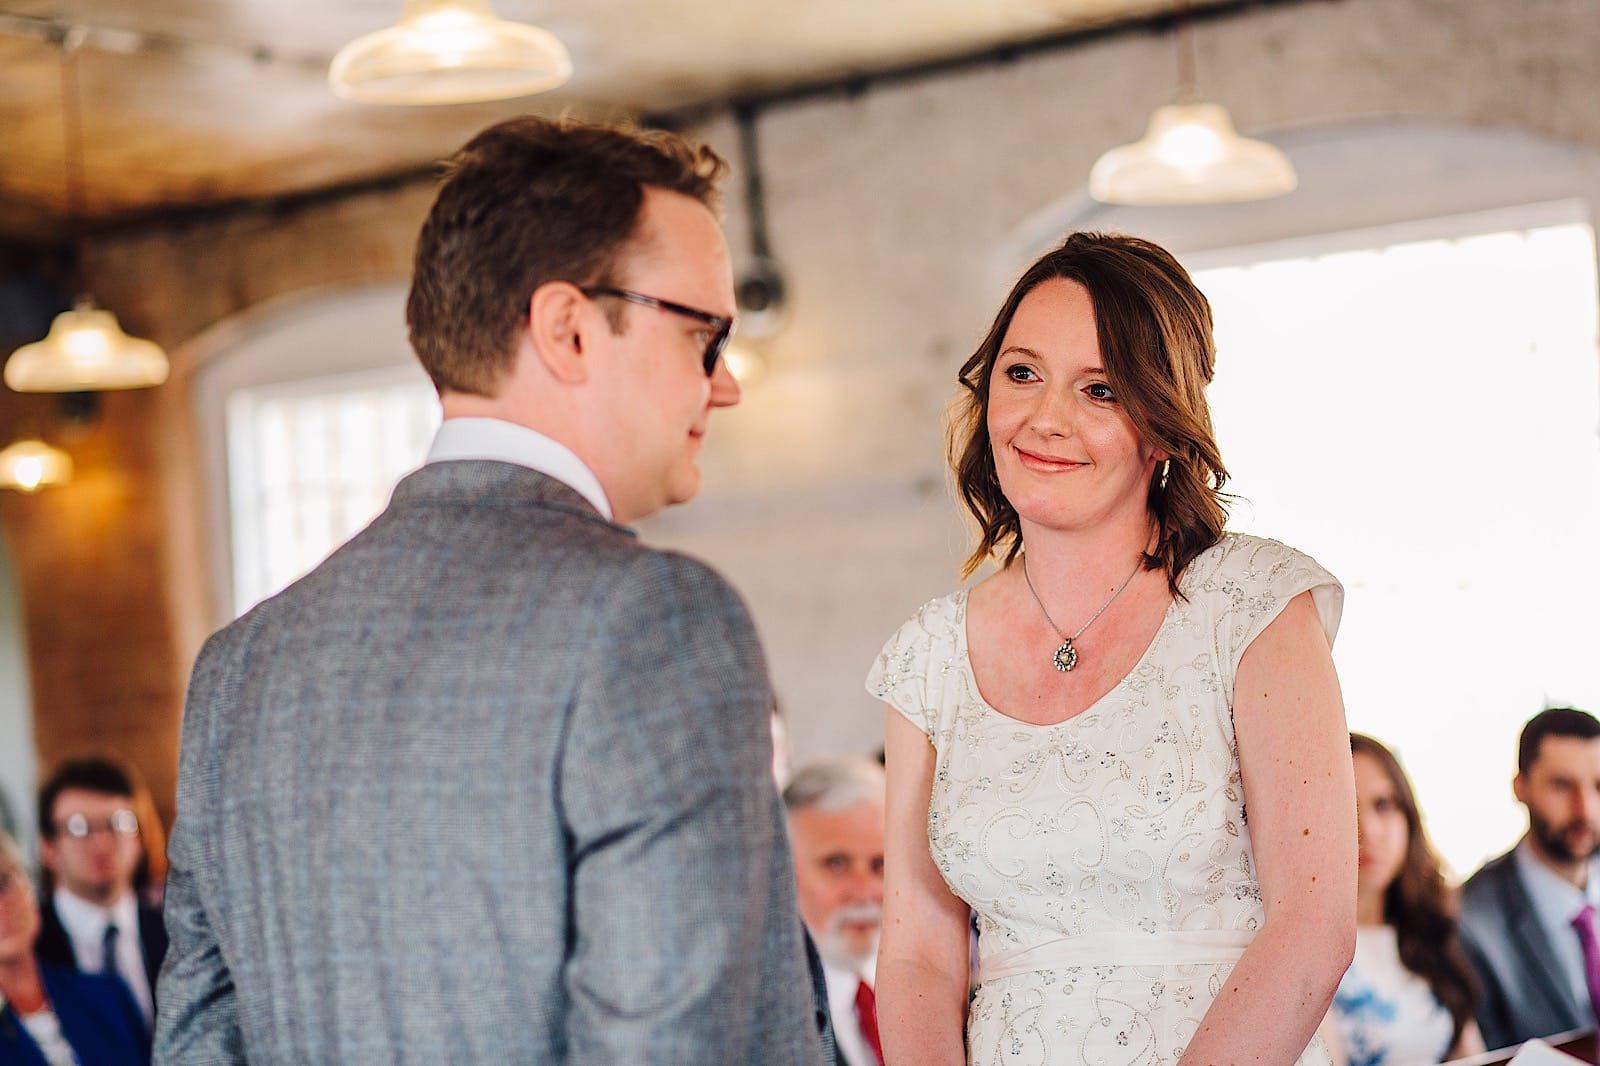 westmill-derby-wedding-photography043